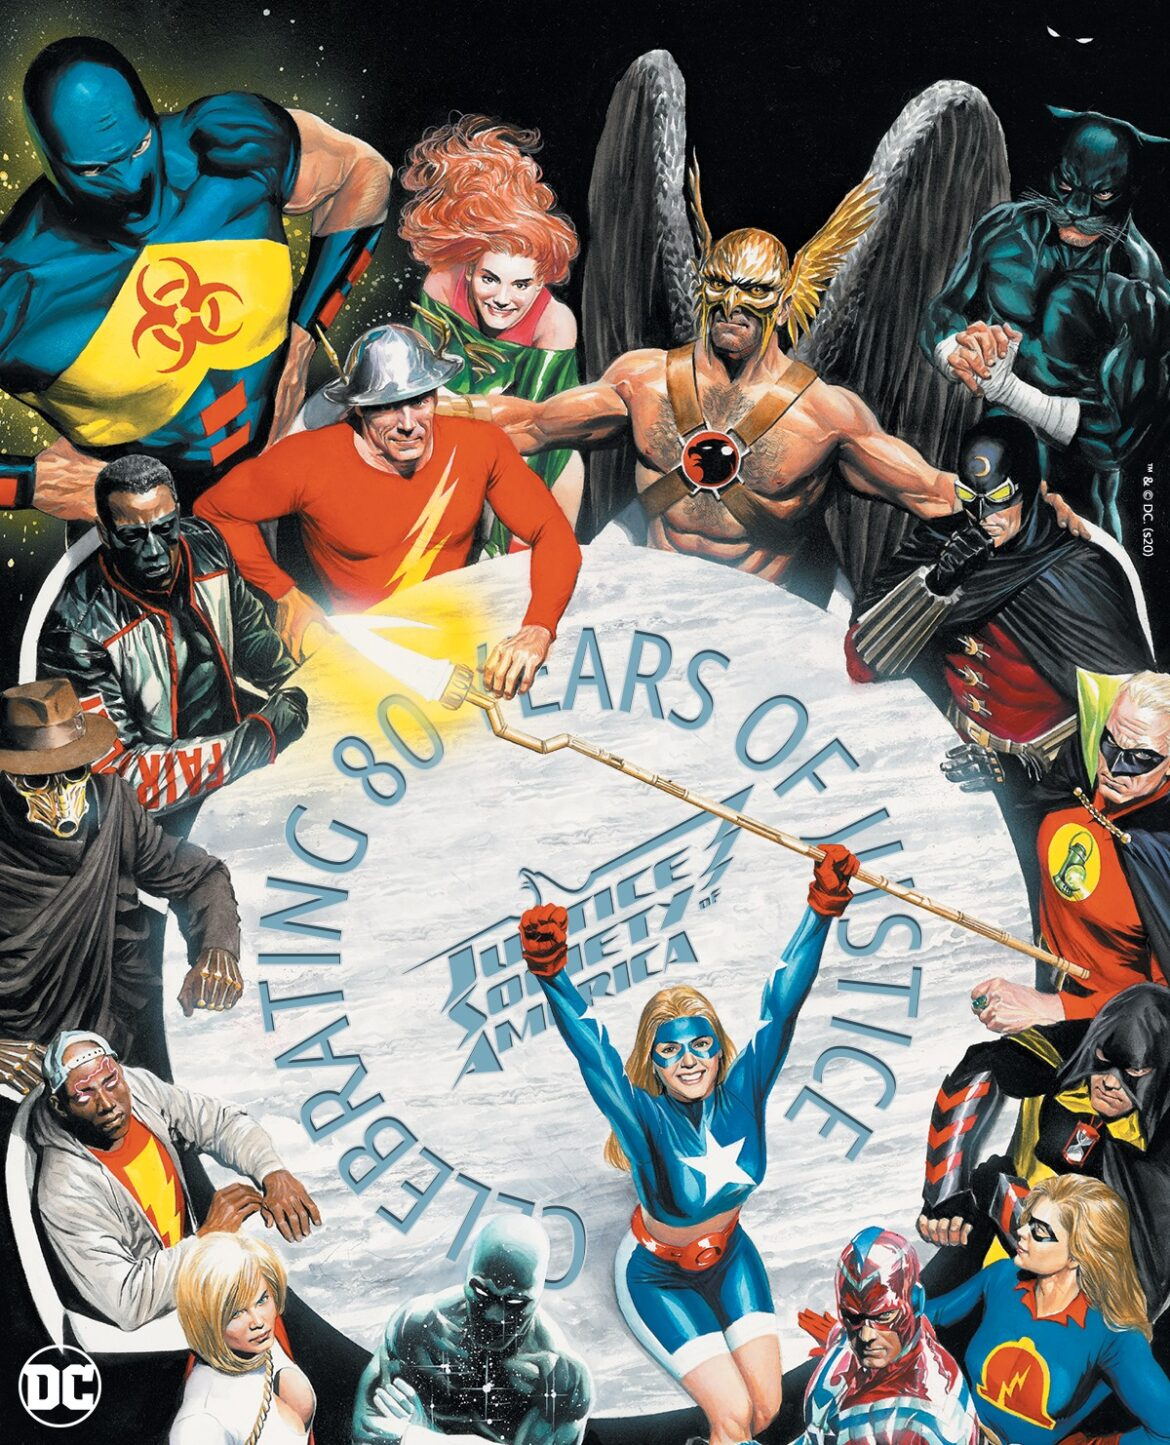 Justice Society of America Turns 80 Years Old